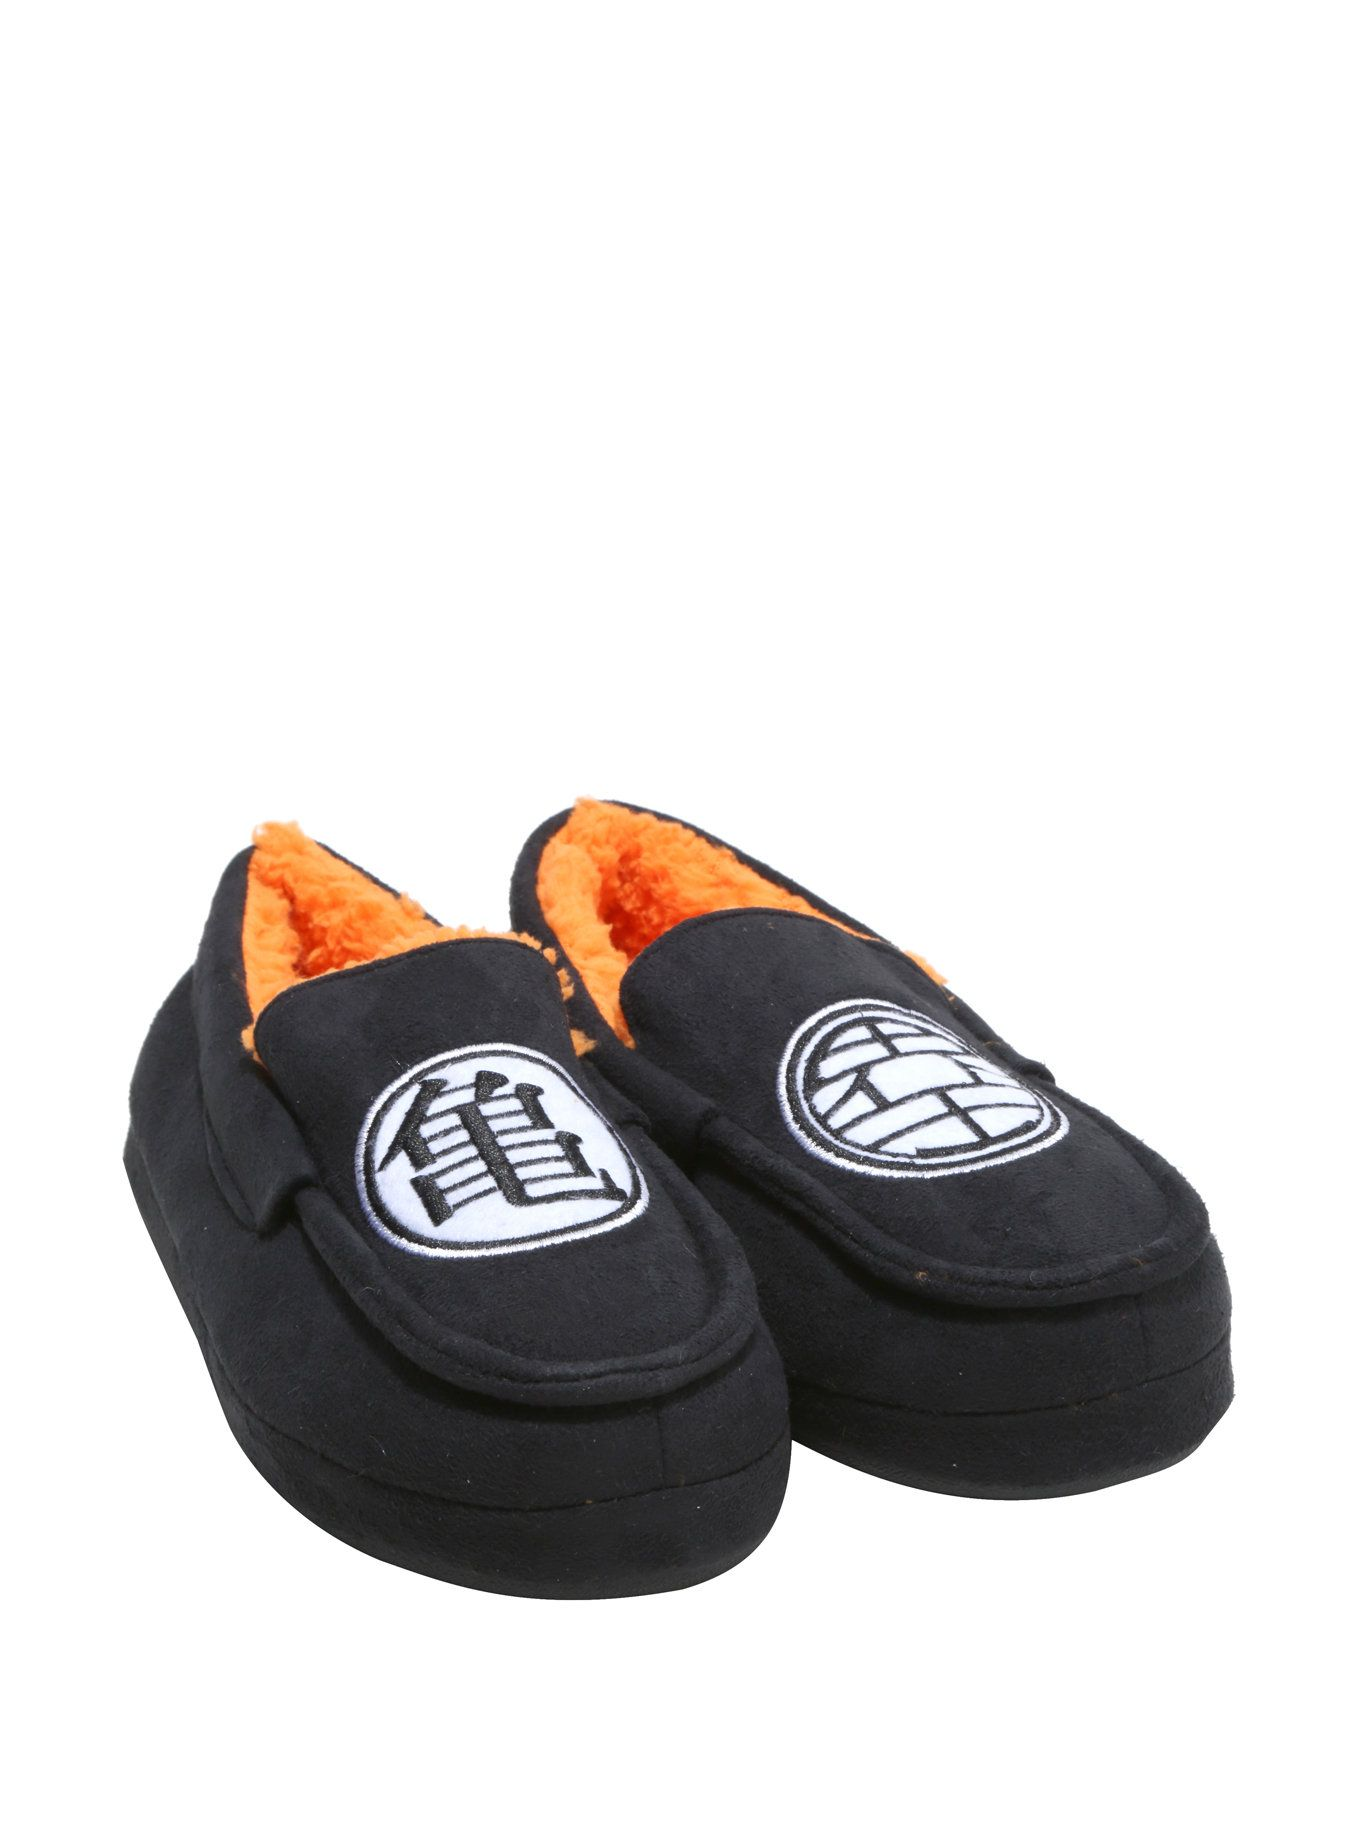 Dragon ball z moccasin slippers slippers moccasins